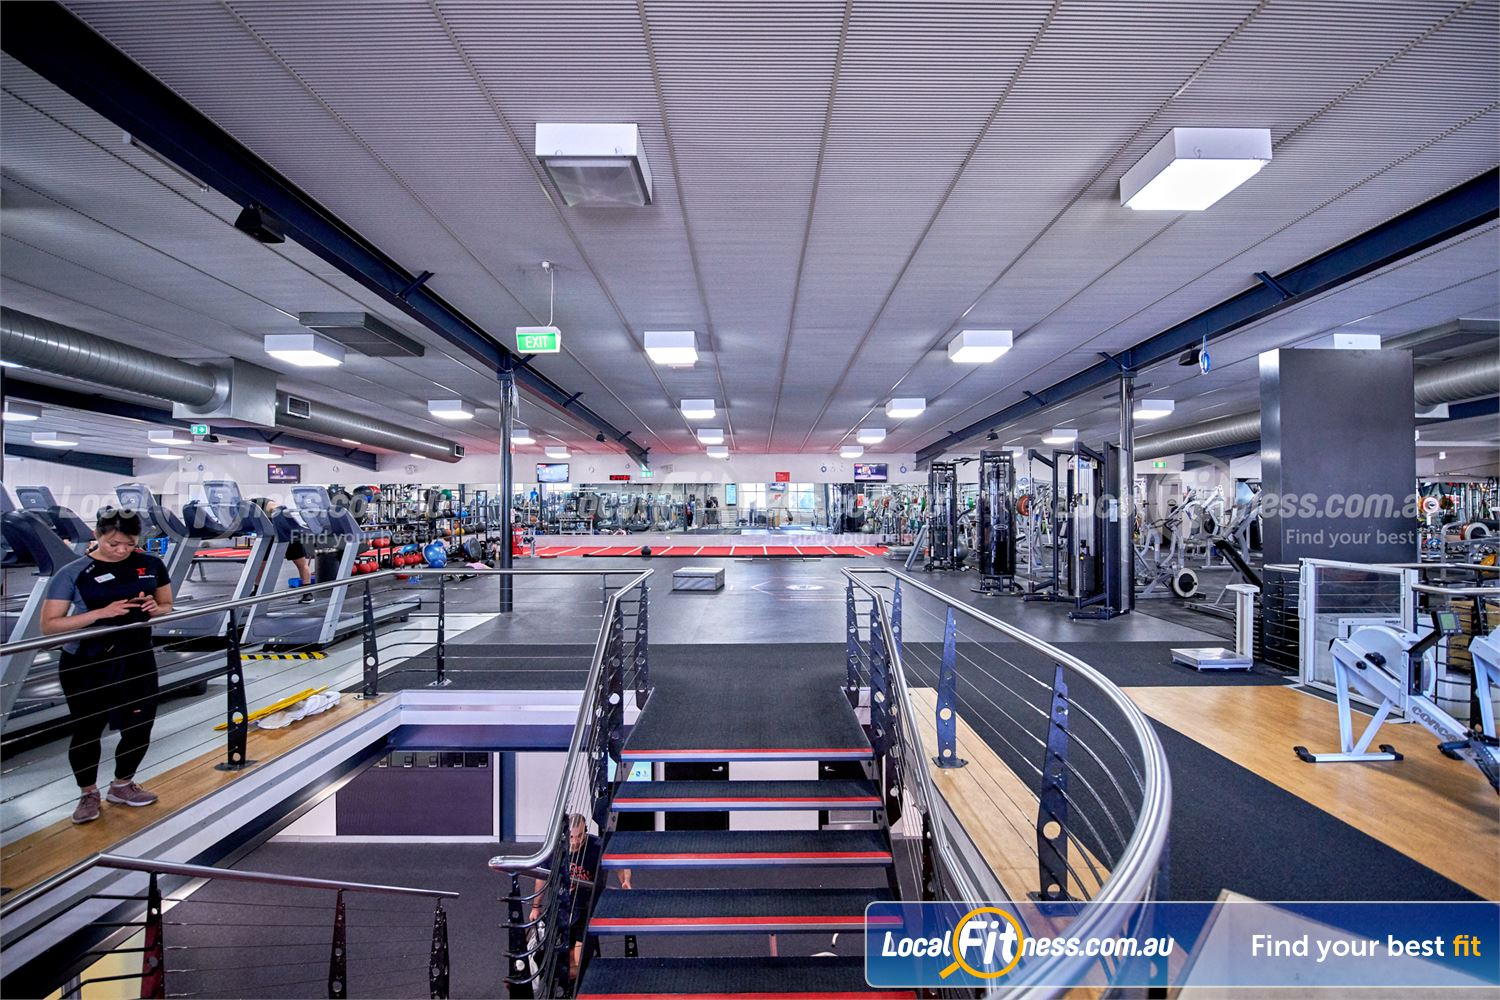 Fitness First Bayside Near Bentleigh 2 Level Bayside gym providing an innovative fitness experience.